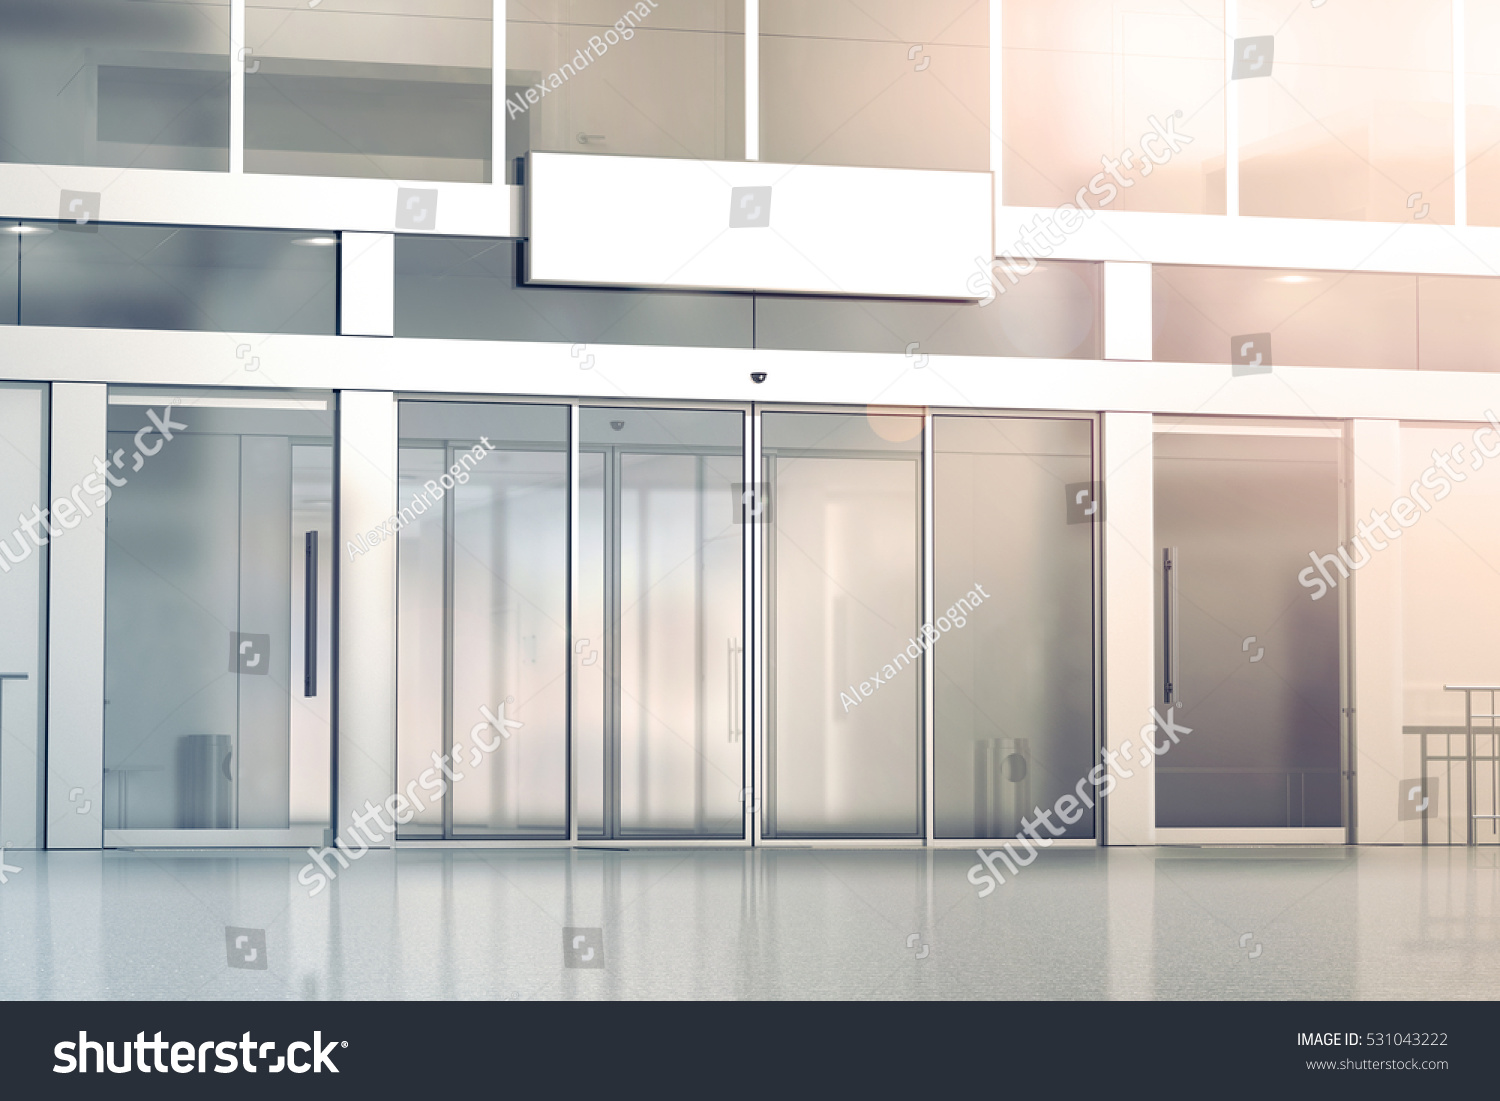 Blank White Signage On The Store Glass Doors Entrance Mockup, 3d Rendering.  Commercial Building